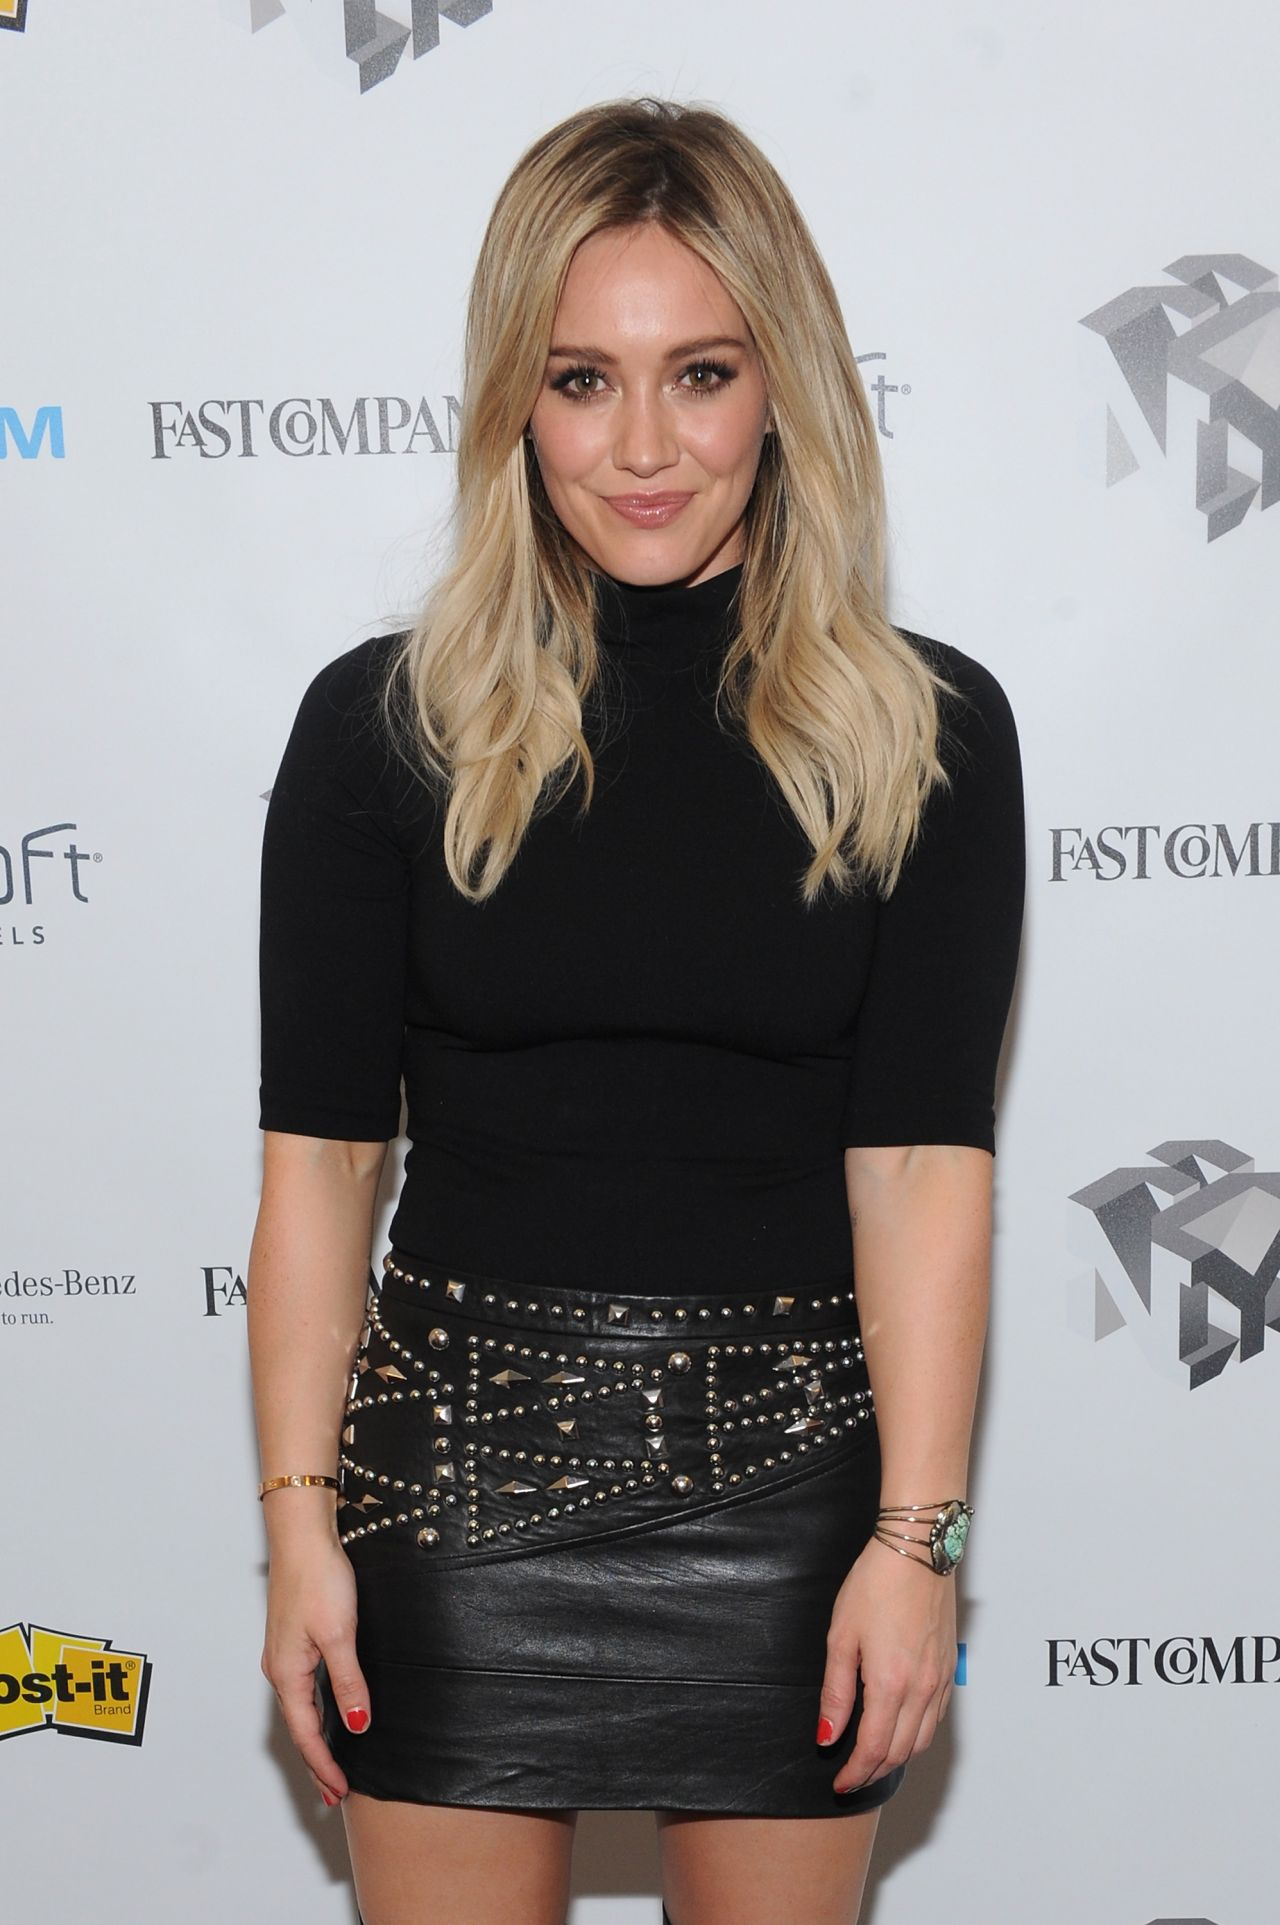 Hilary Duff - The Fast Company Innovation Festival Inside ... Hilary Duff